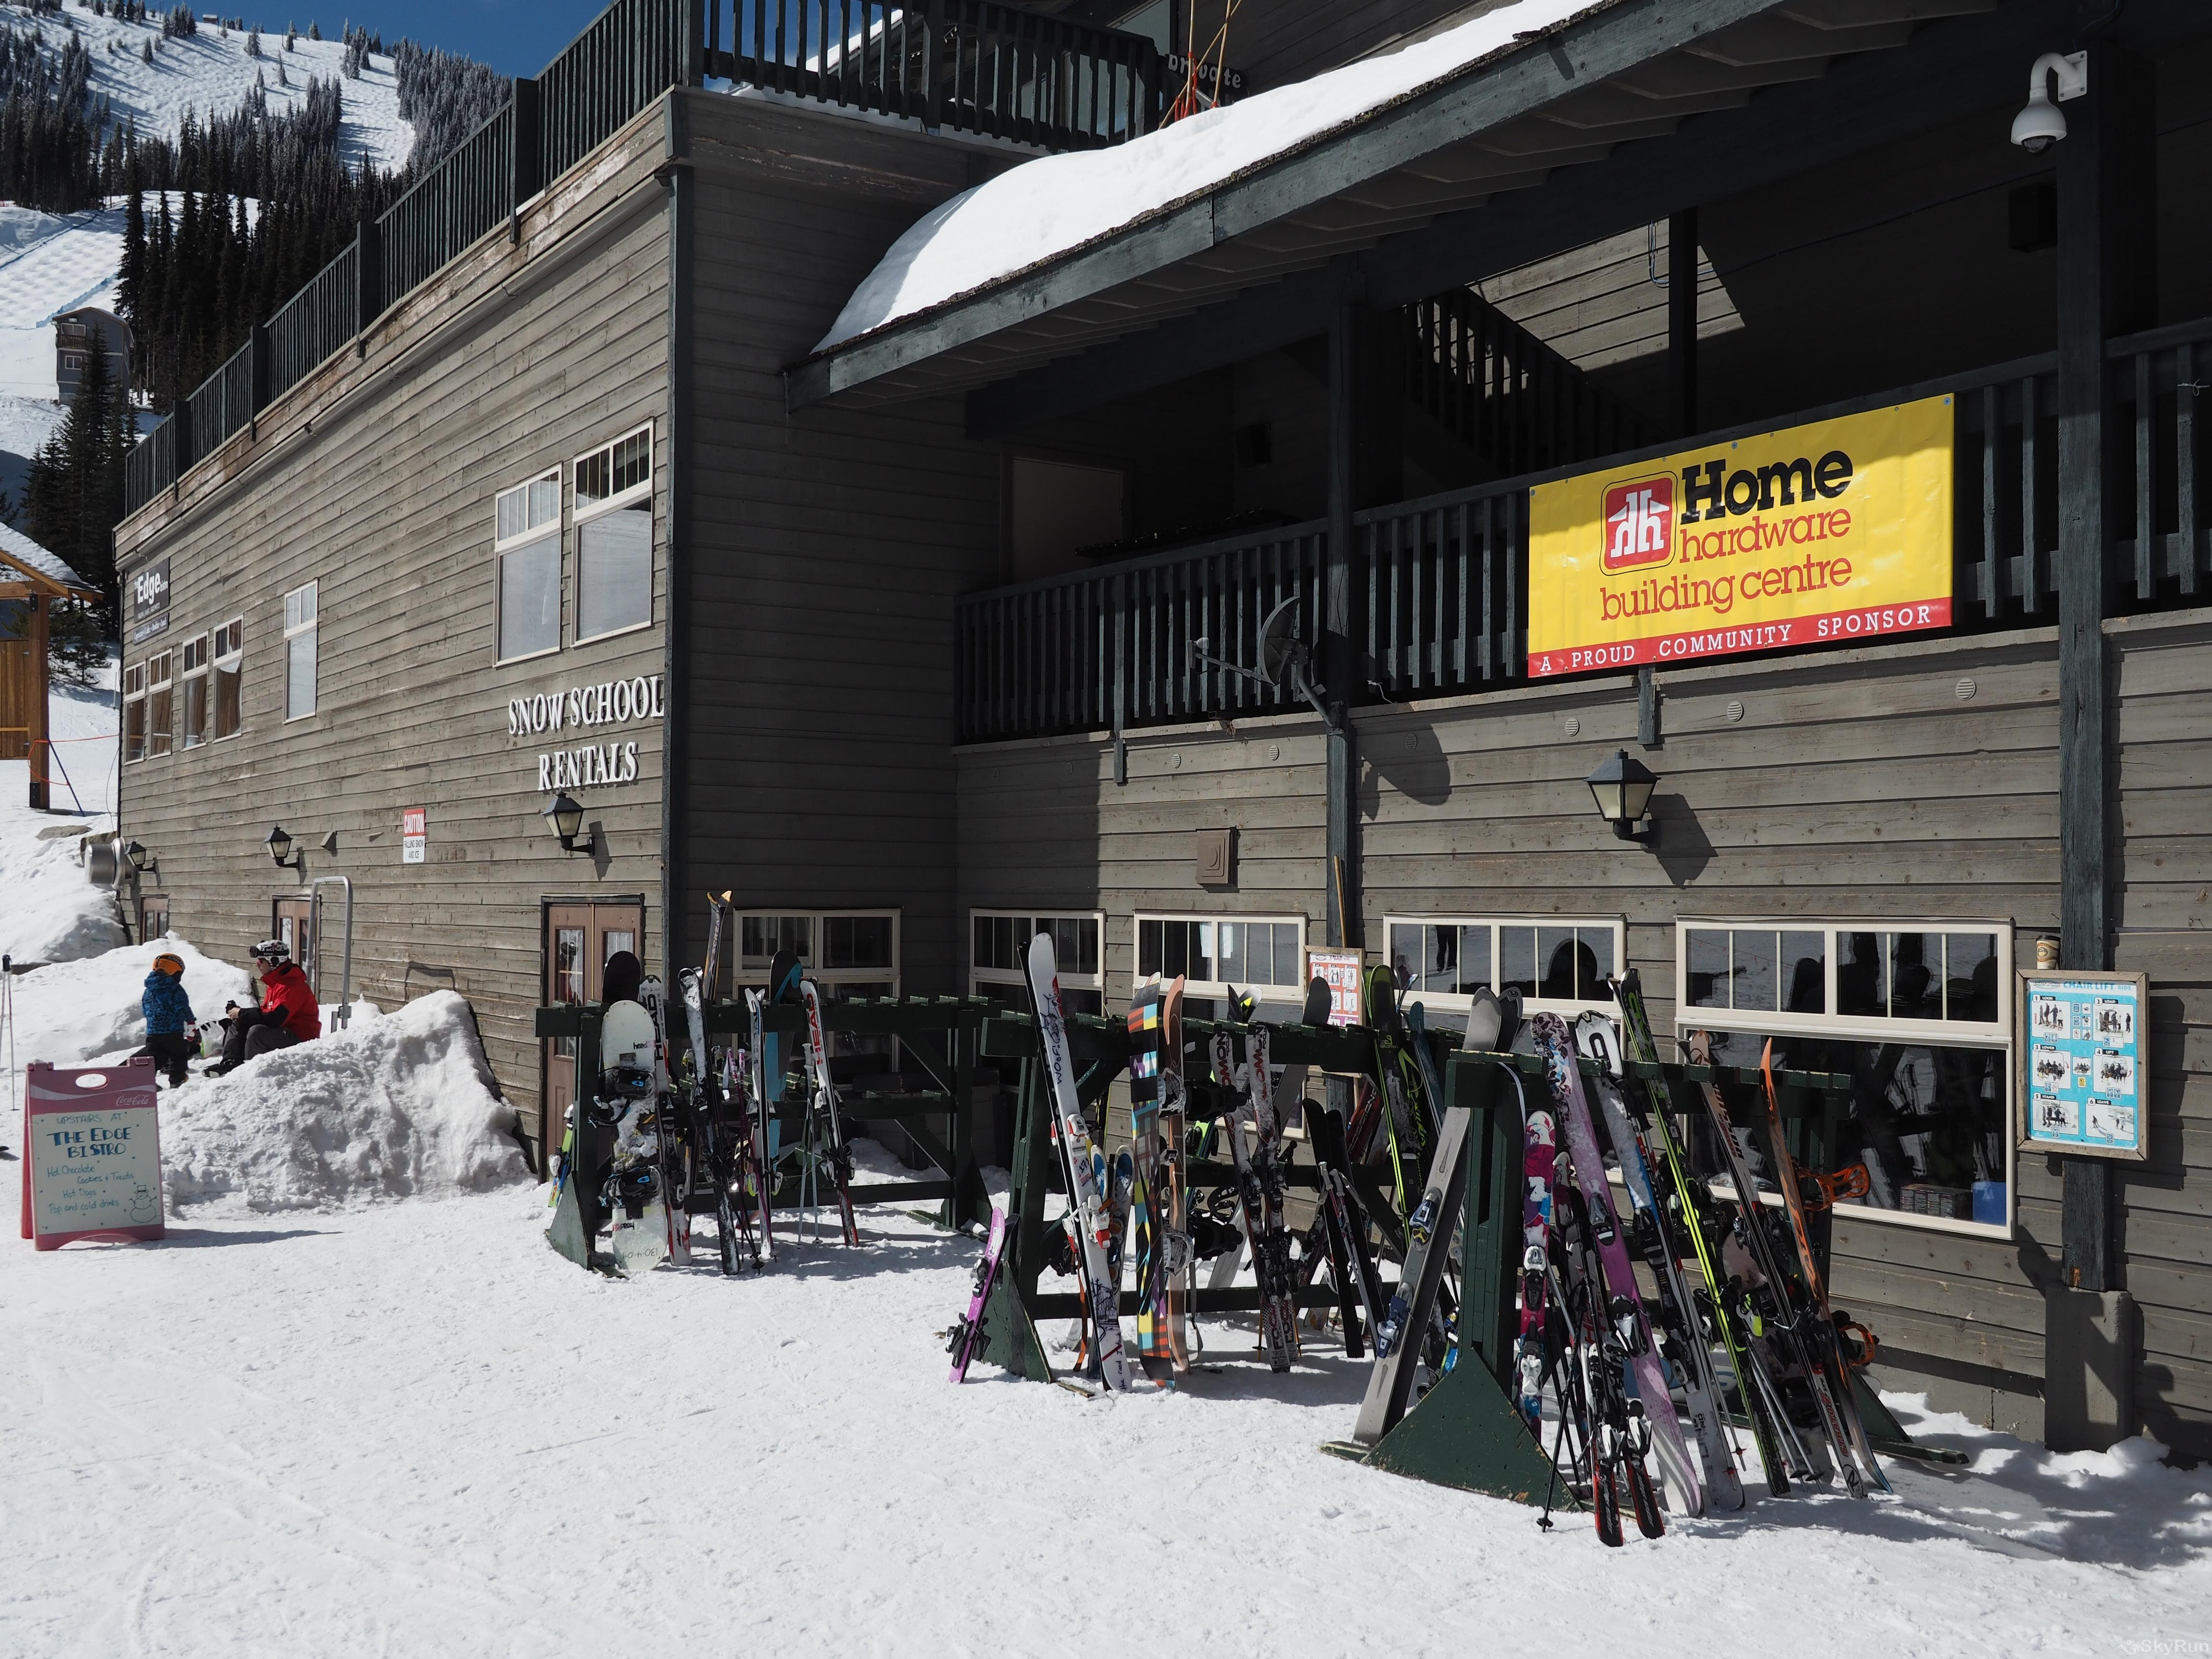 Apex Mountain Inn Standard Room 305 The Rental Shop and Ski School